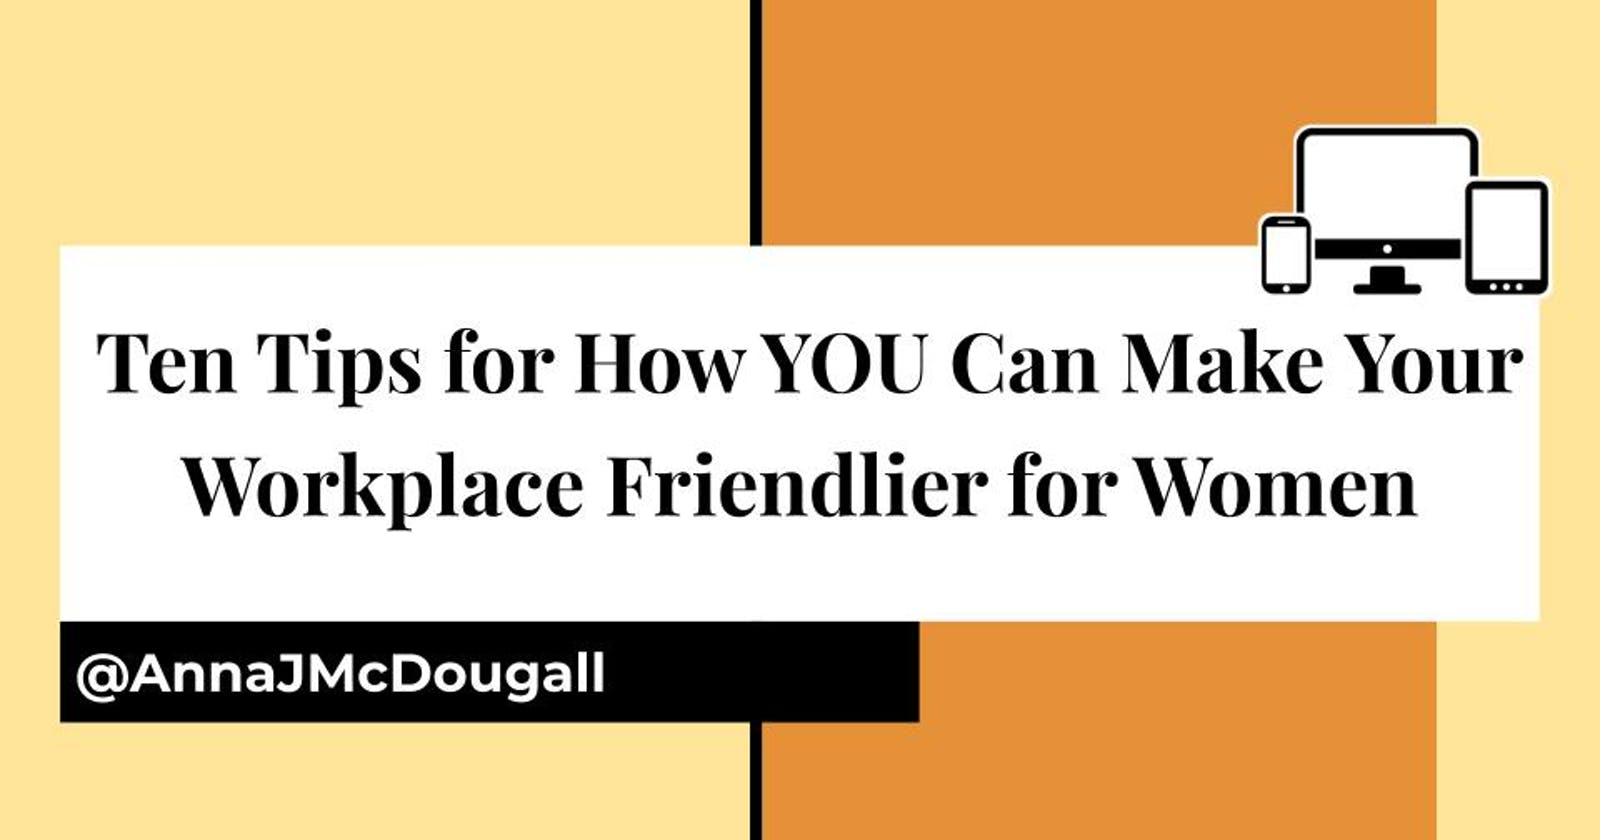 Ten Tips for How YOU Can Make Your Workplace Friendlier for Women